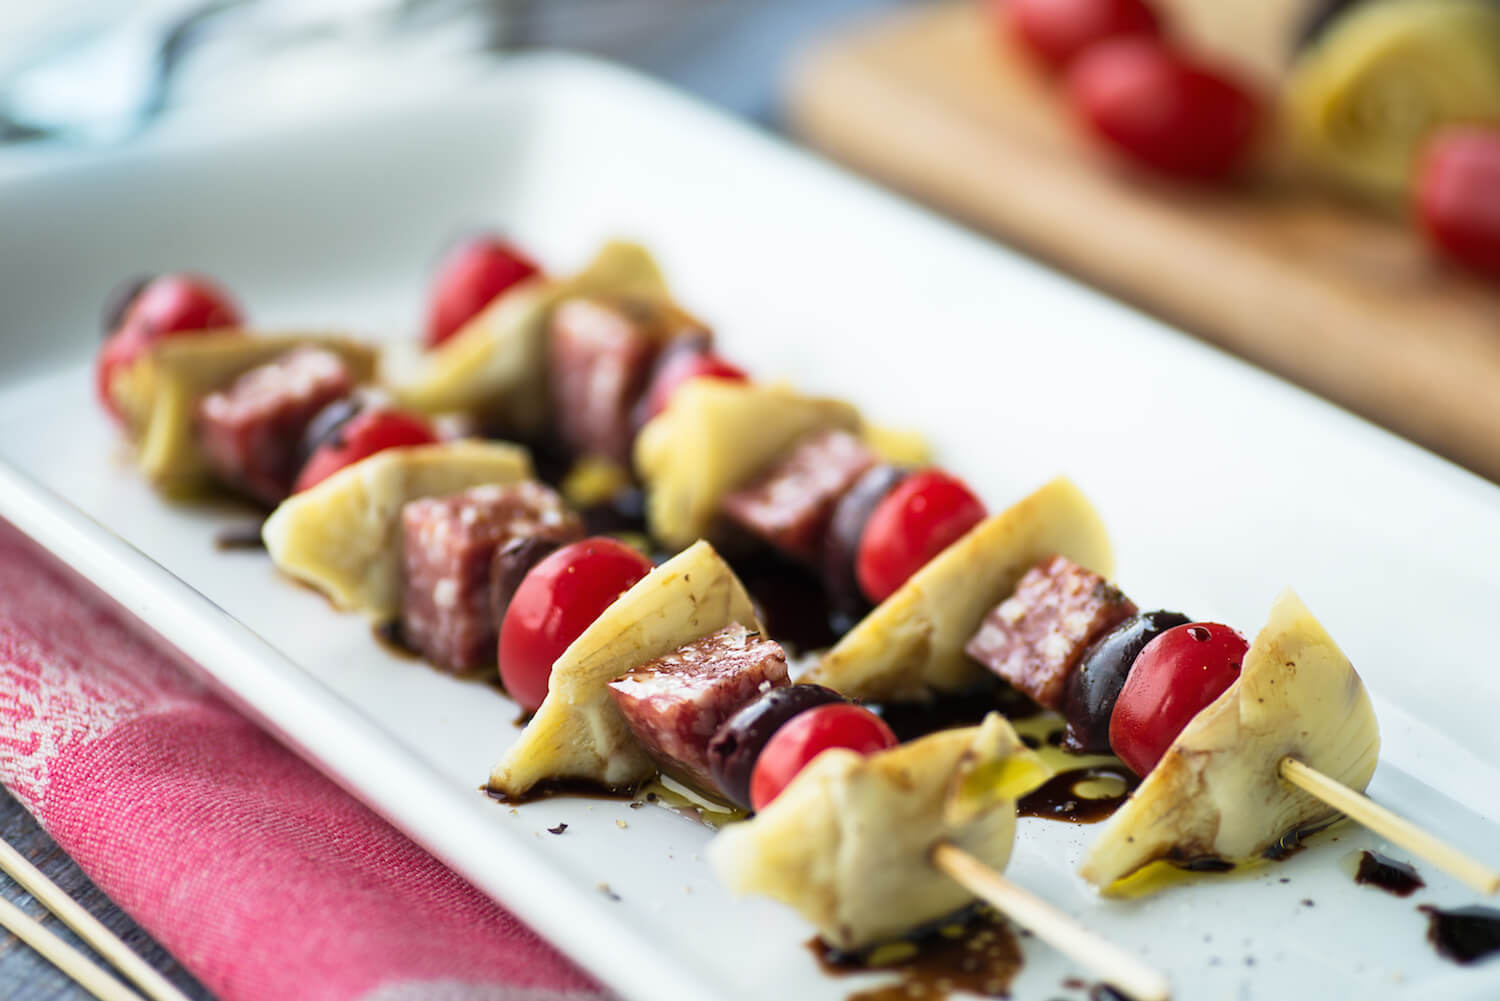 Antipasto kebabs with salami olives artichokes and tomatoes on a white plate